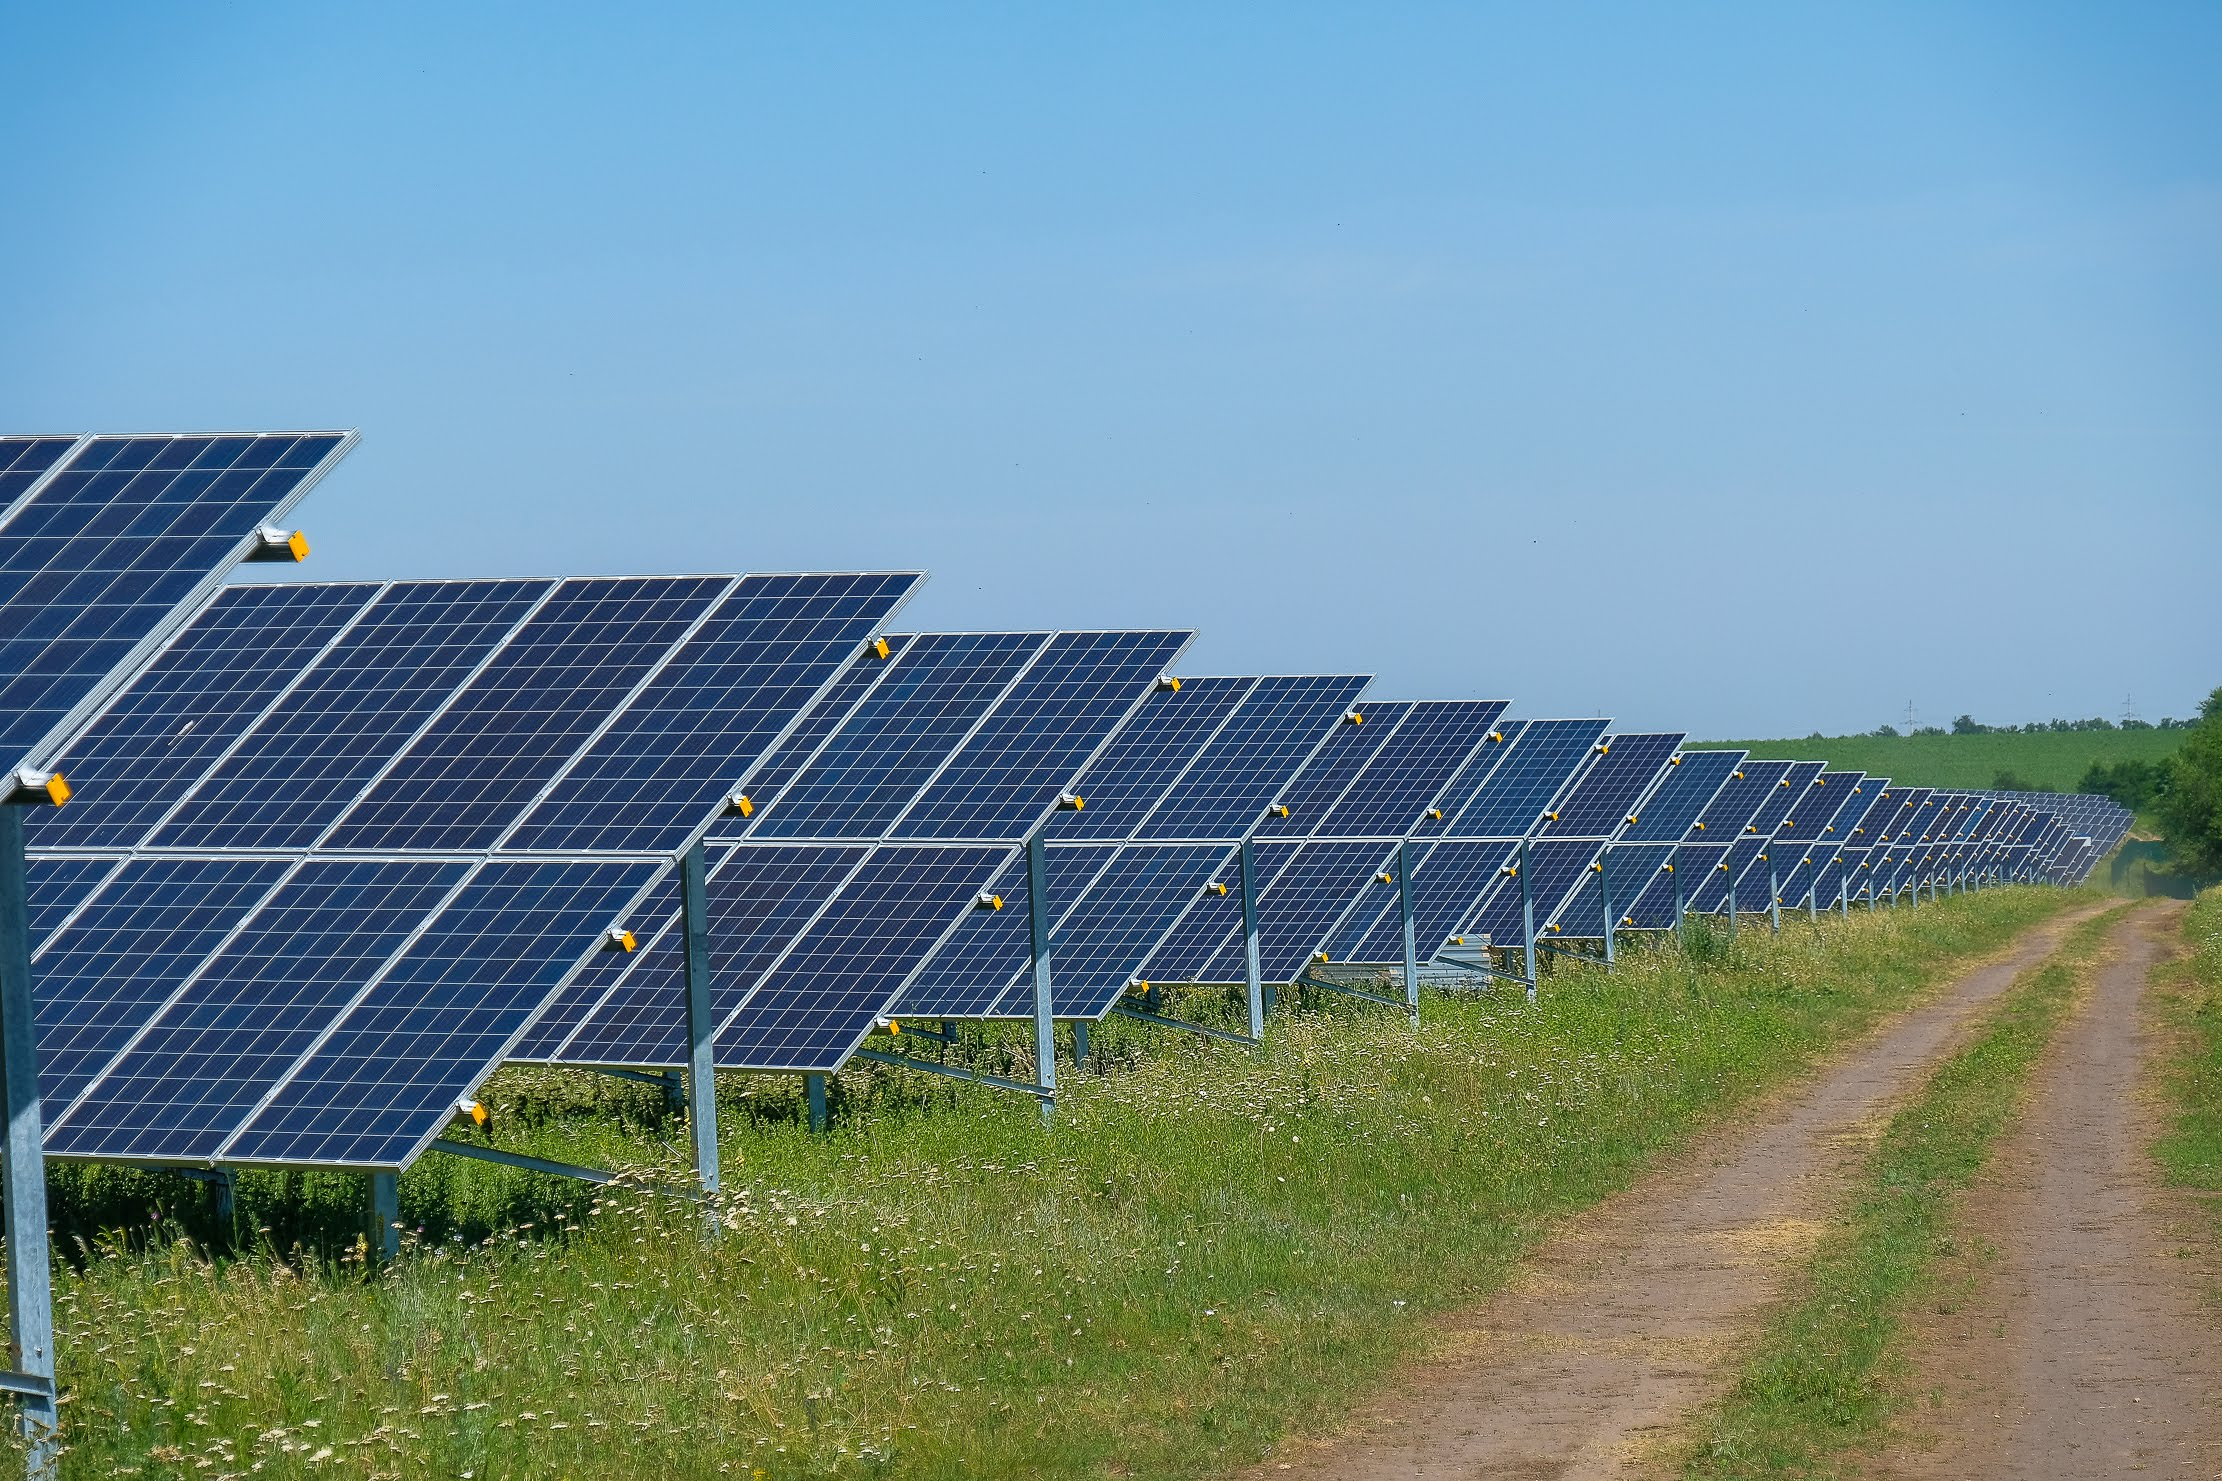 One more solar power plant built in Dnipropetrovsk Oblast